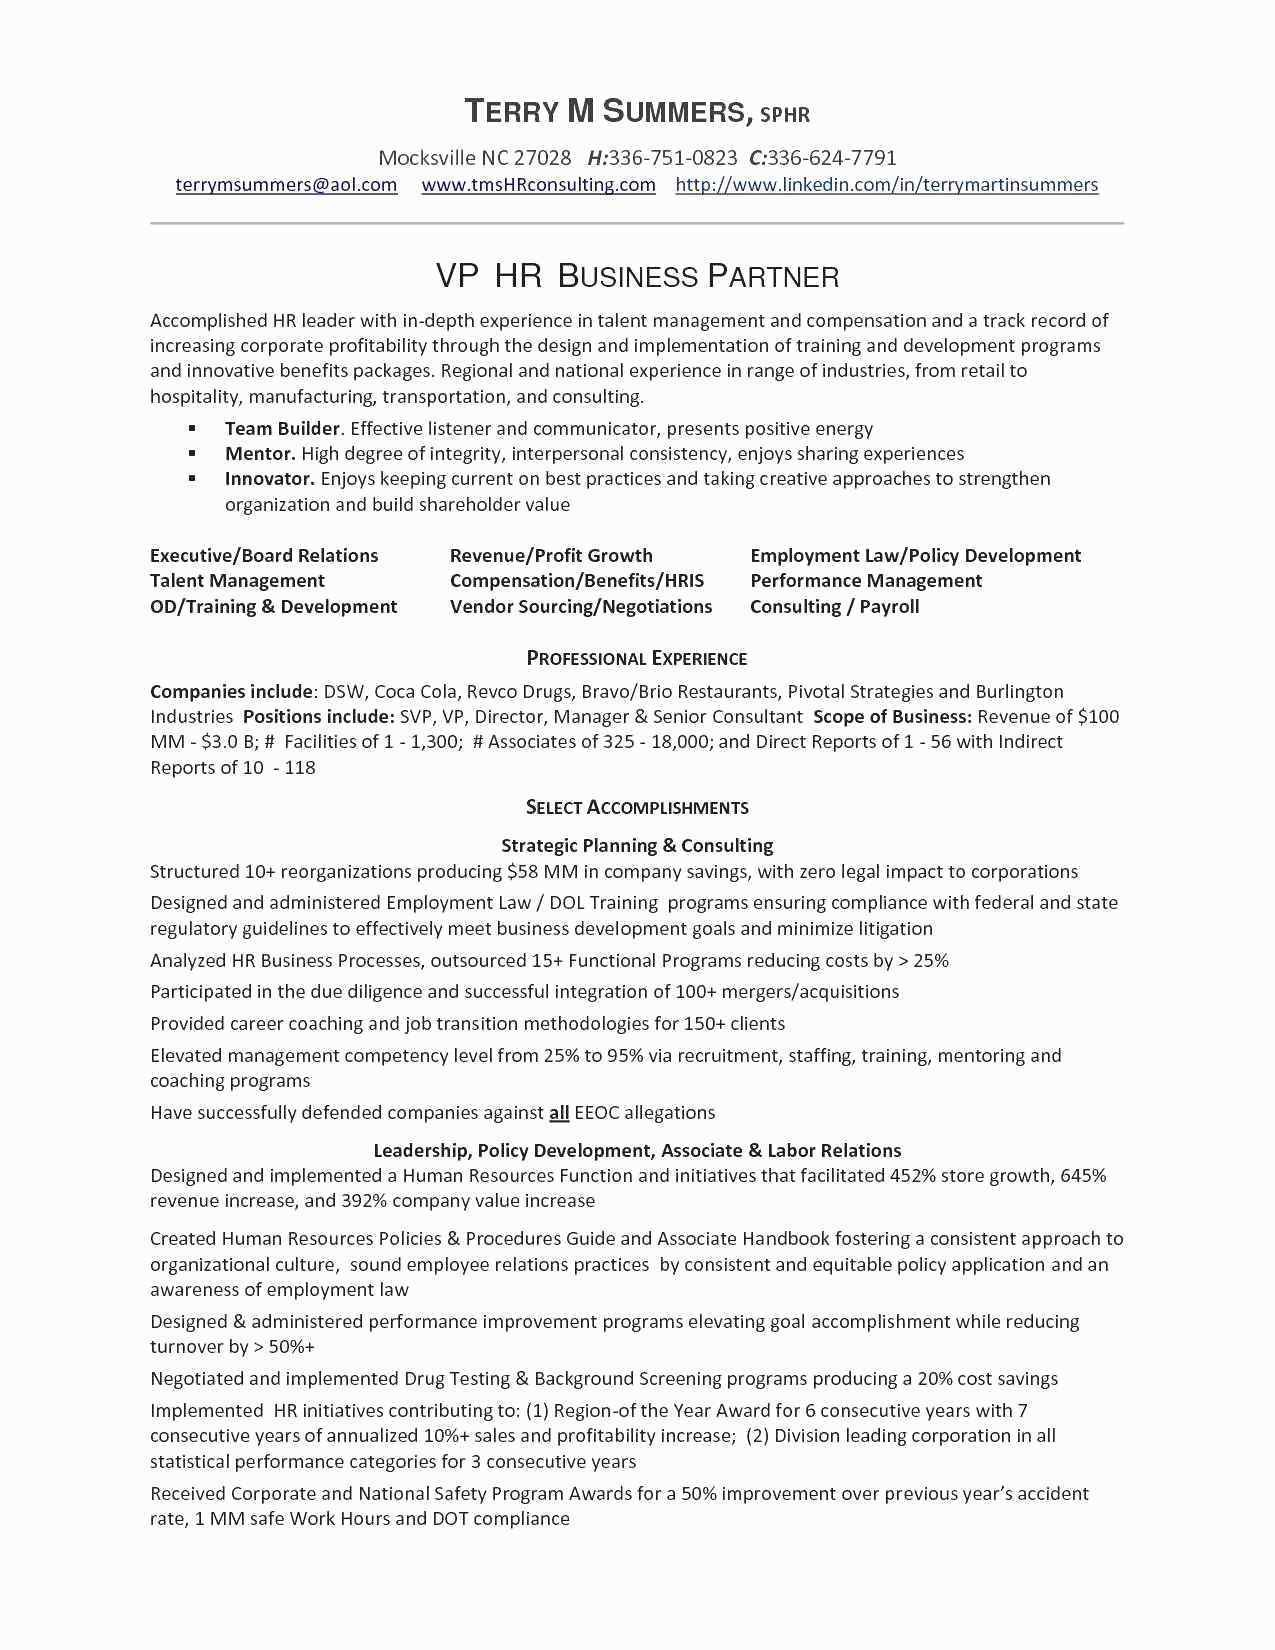 mergers and acquisitions resume template Collection-Mergers And Inquisitions Resume Template New 25 Unique Mergers And Inquisitions Resume Template Trendsozleri Fresh Mergers And Inquisitions Resume 4-s